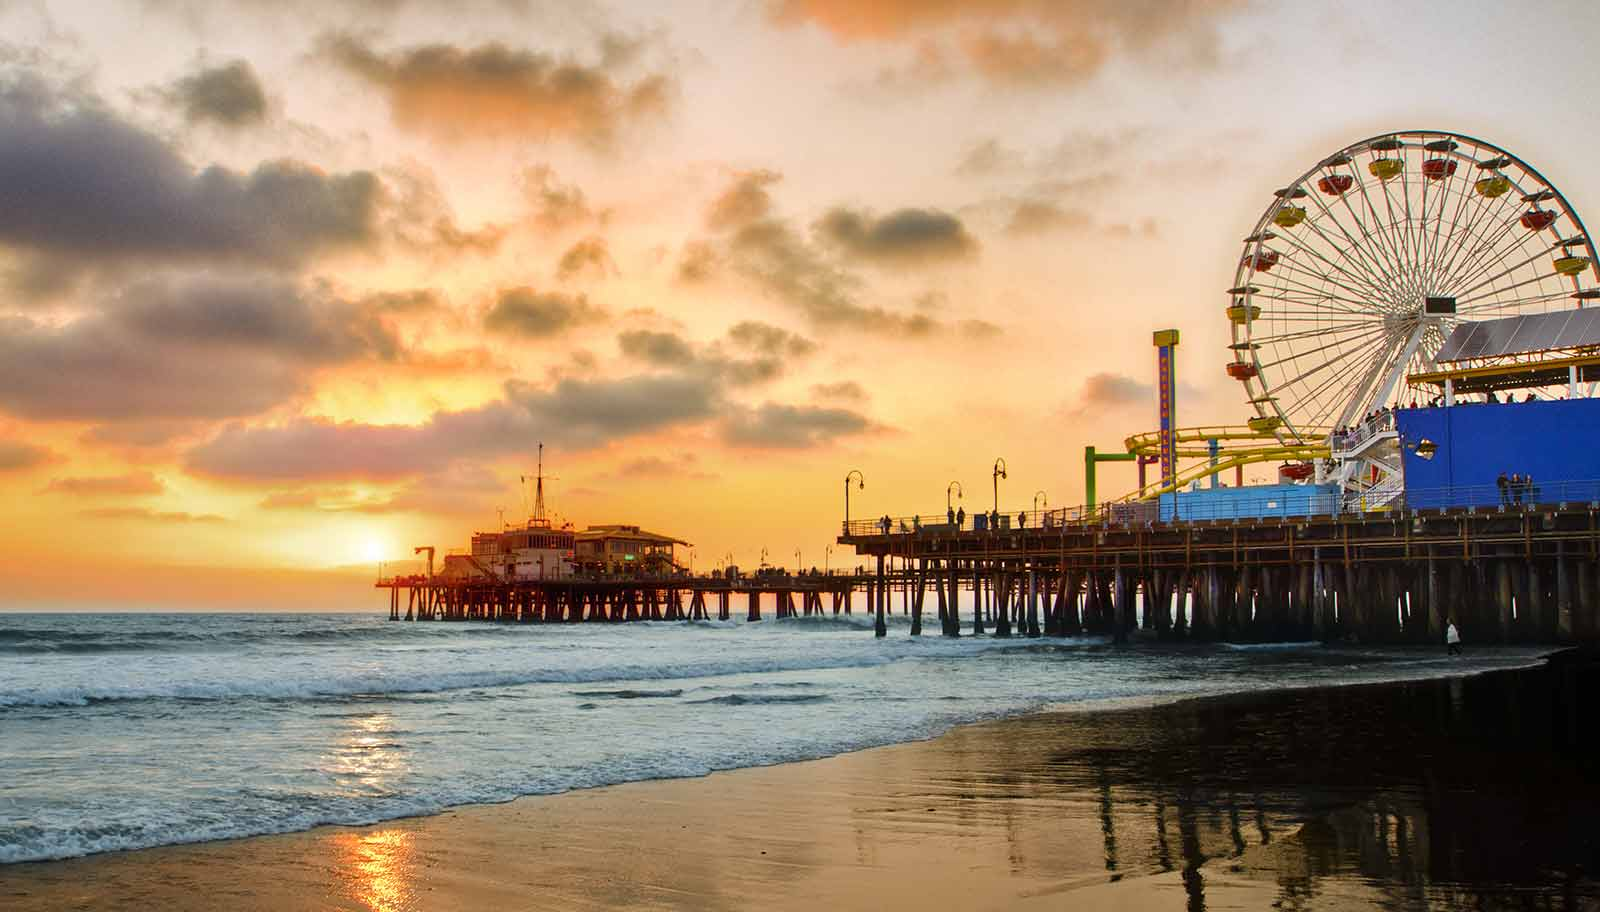 sunset of Santa Monica pier with ferris wheel and ocean waves